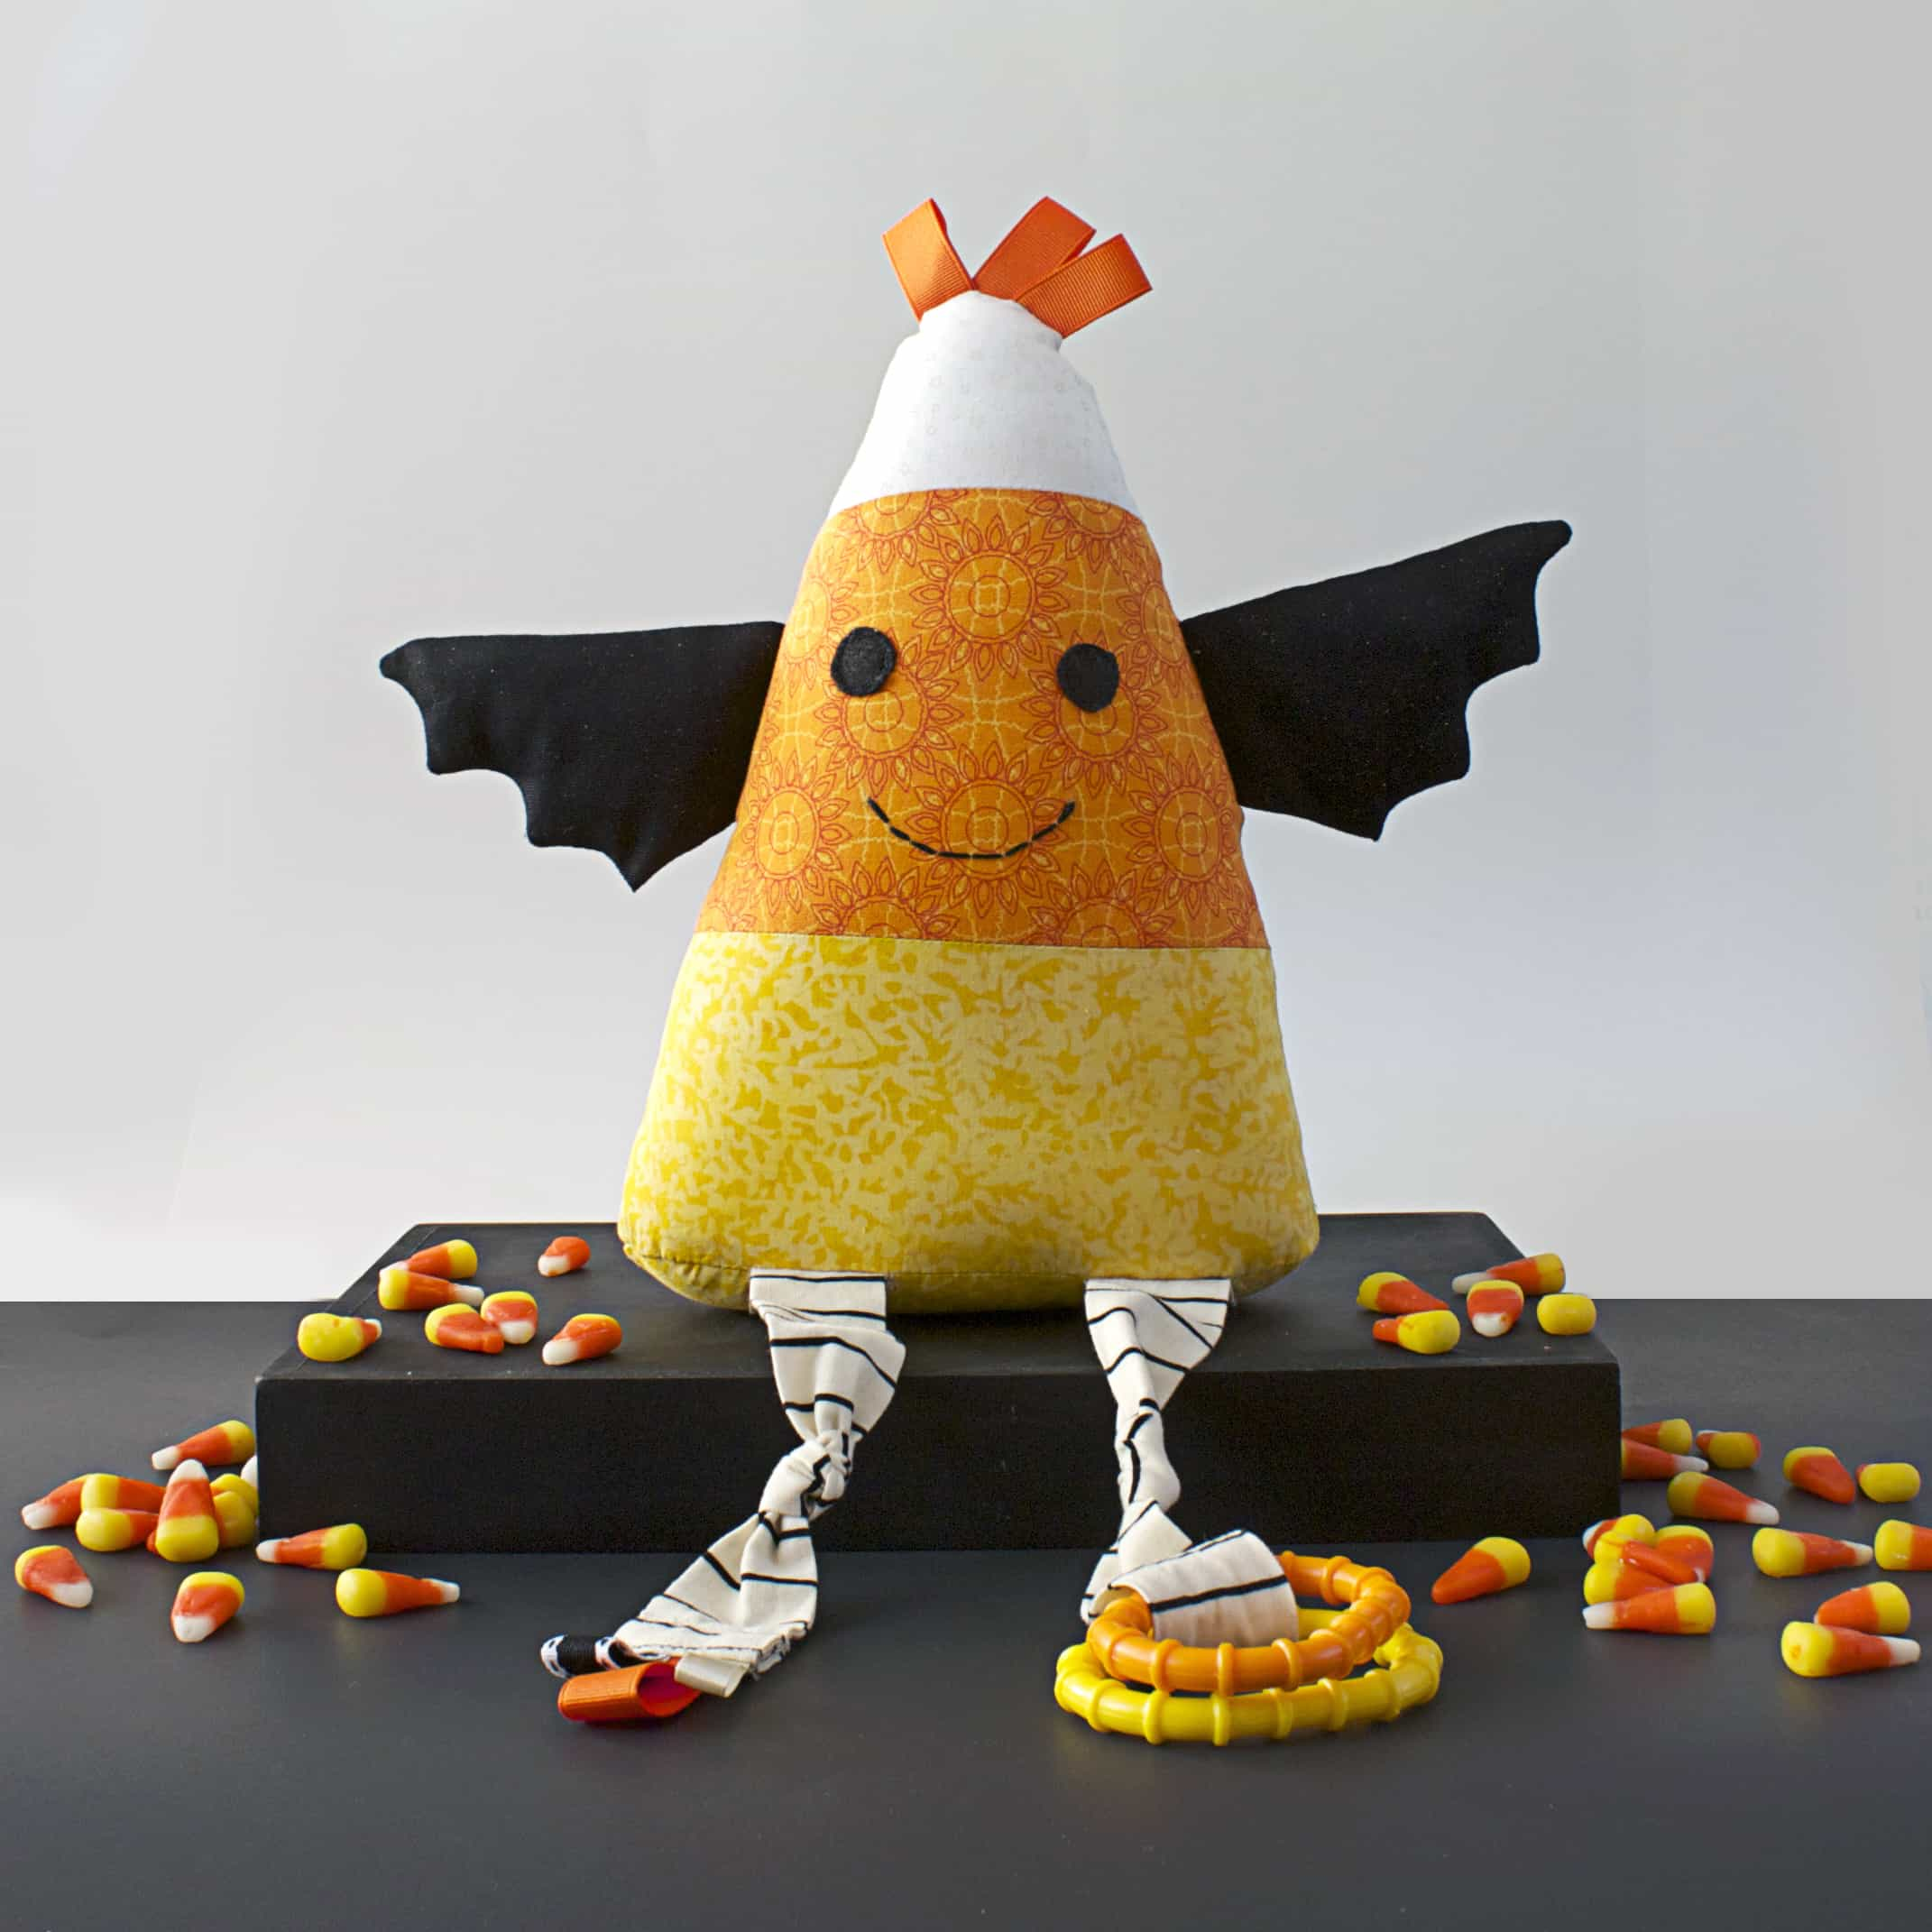 Cute candy corn stuffed toy sitting on a black tabletop with candy corn around it.